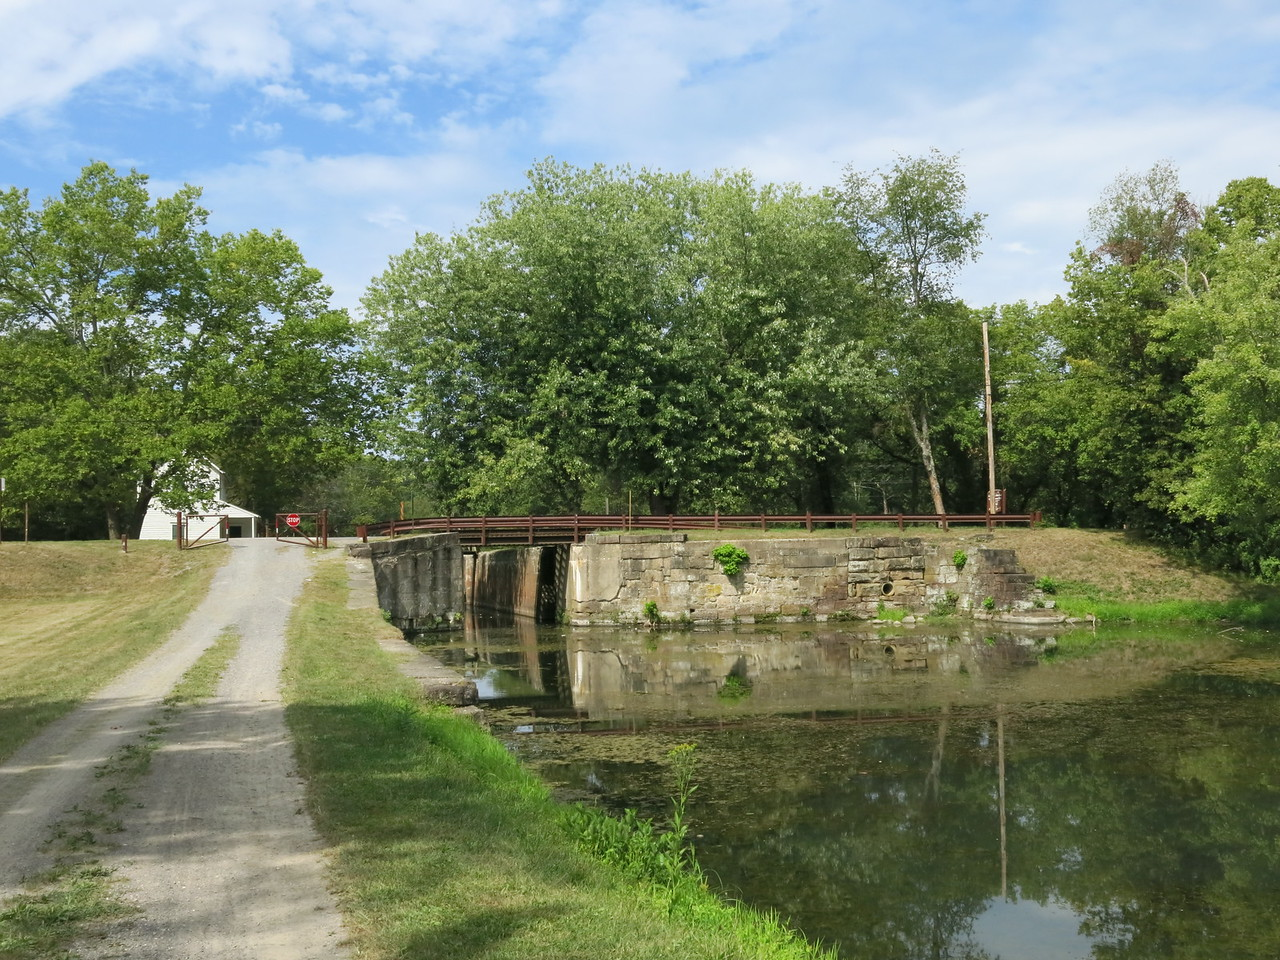 Looking back at the lockhouse, towpath and Lock 70